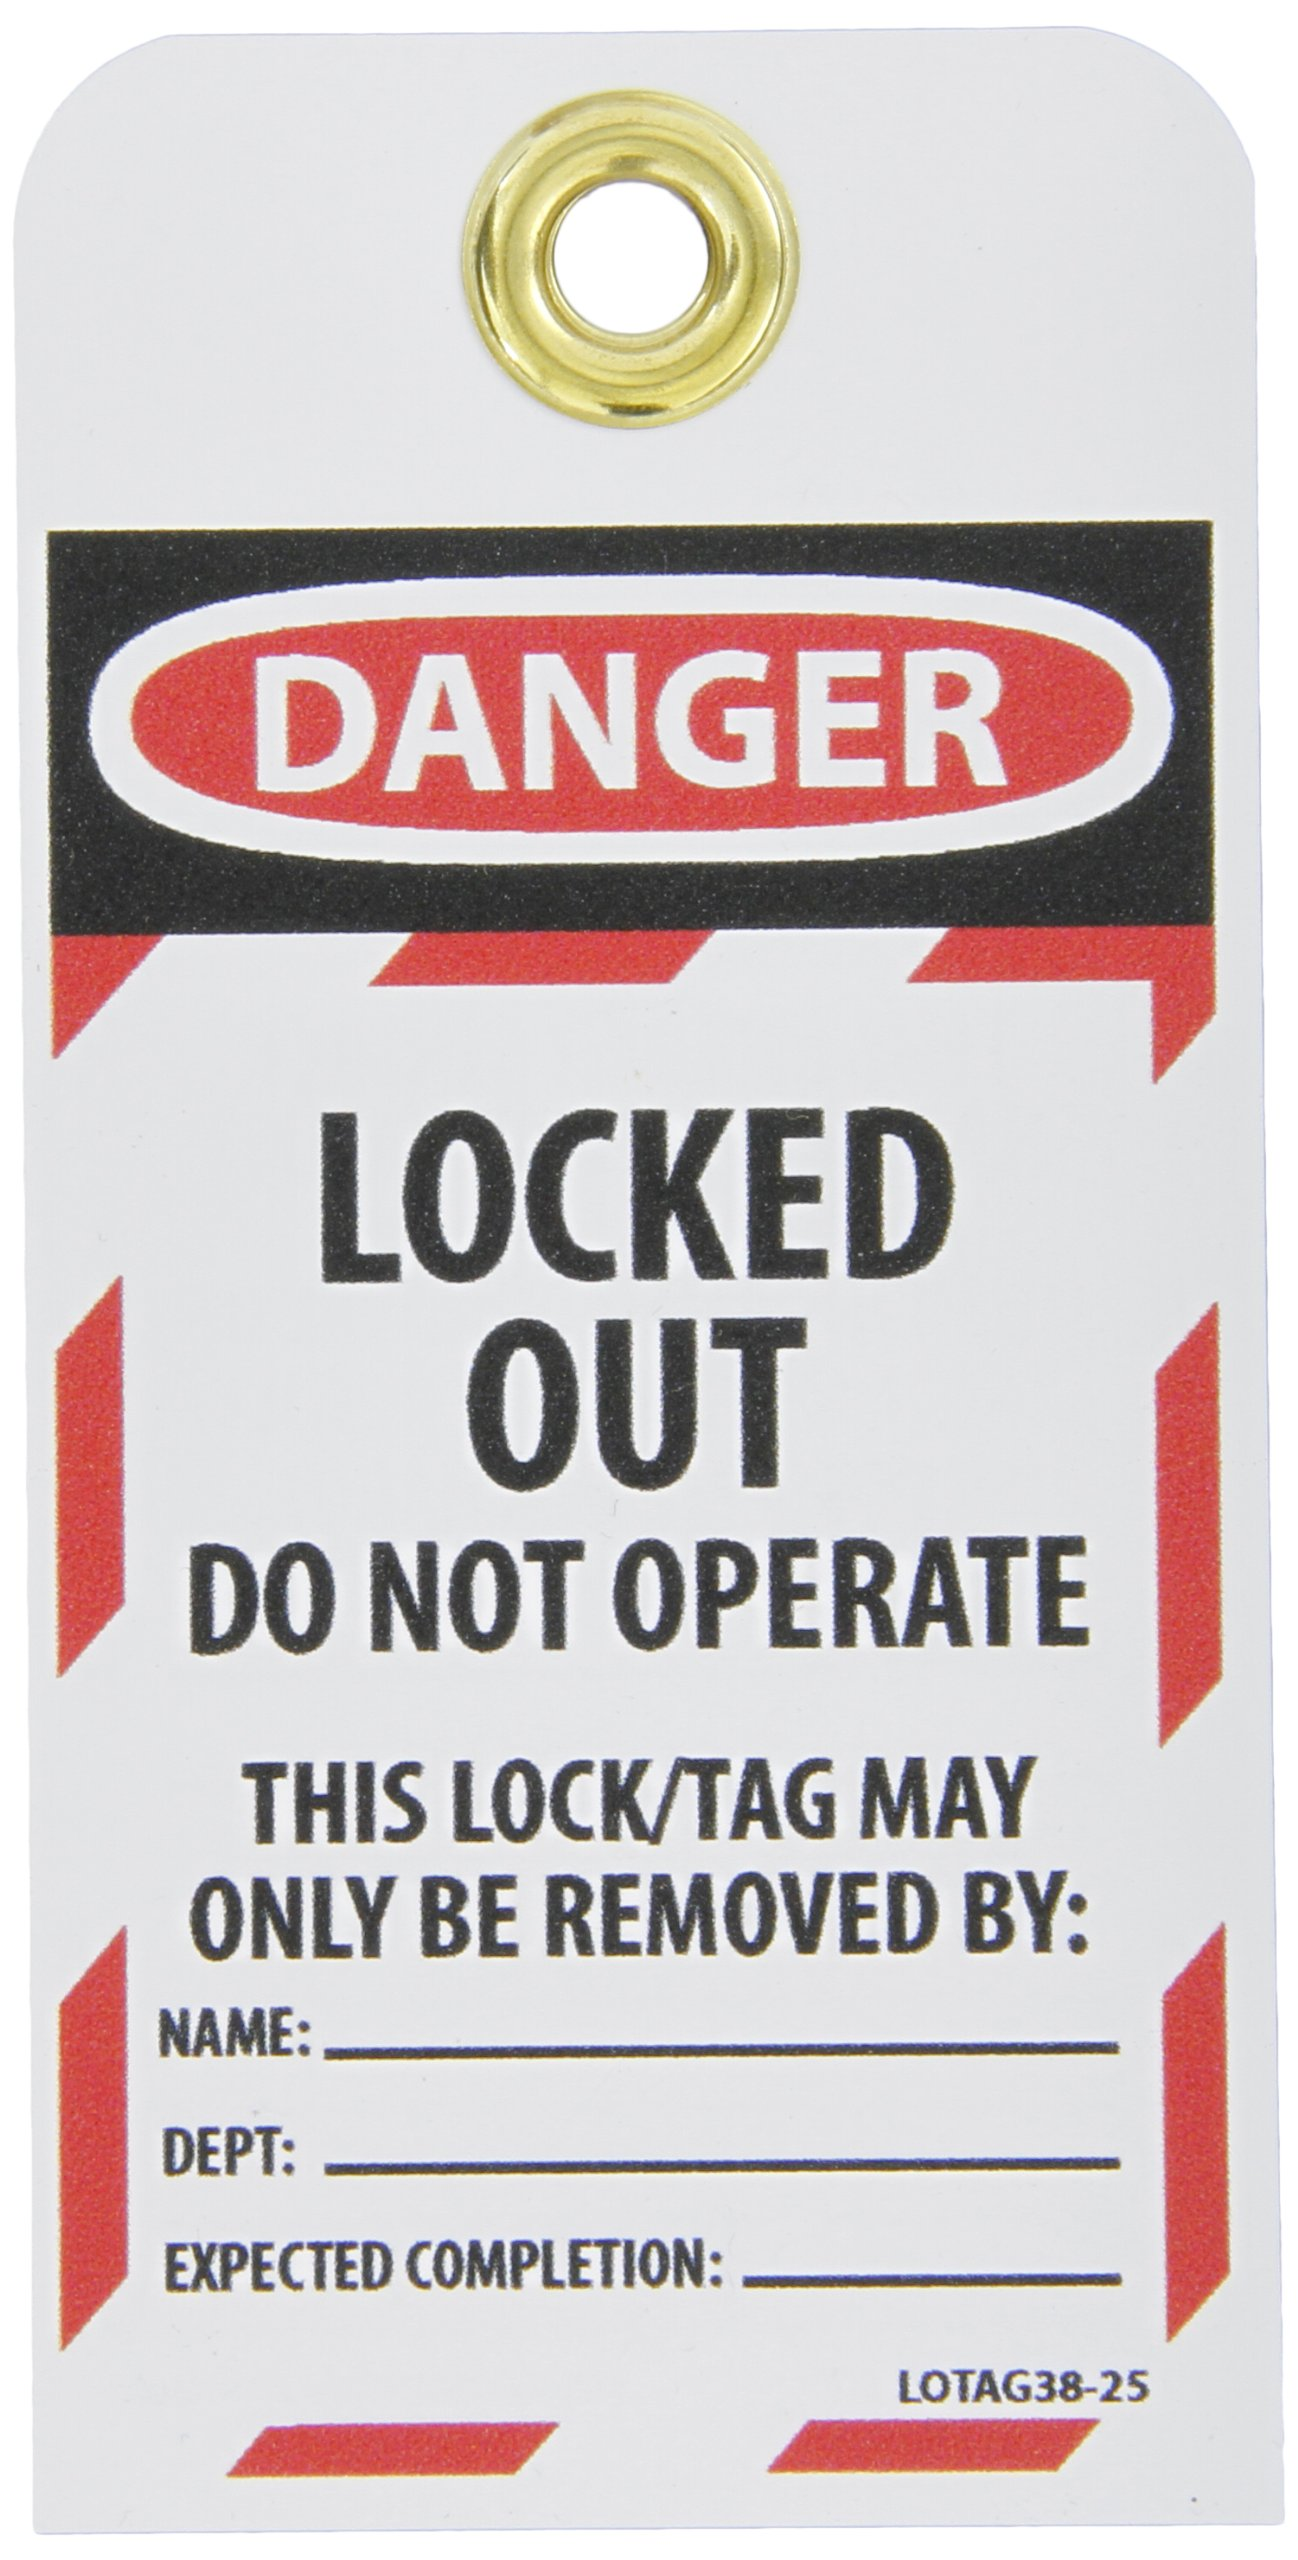 NMC LOTAG38-25''Danger - Locked Out DO NOT Operate'' Lockout Tag, Unrippable Vinyl, 3'' Length, 6'' Height, Black/Red on White (Pack of 25) by NMC